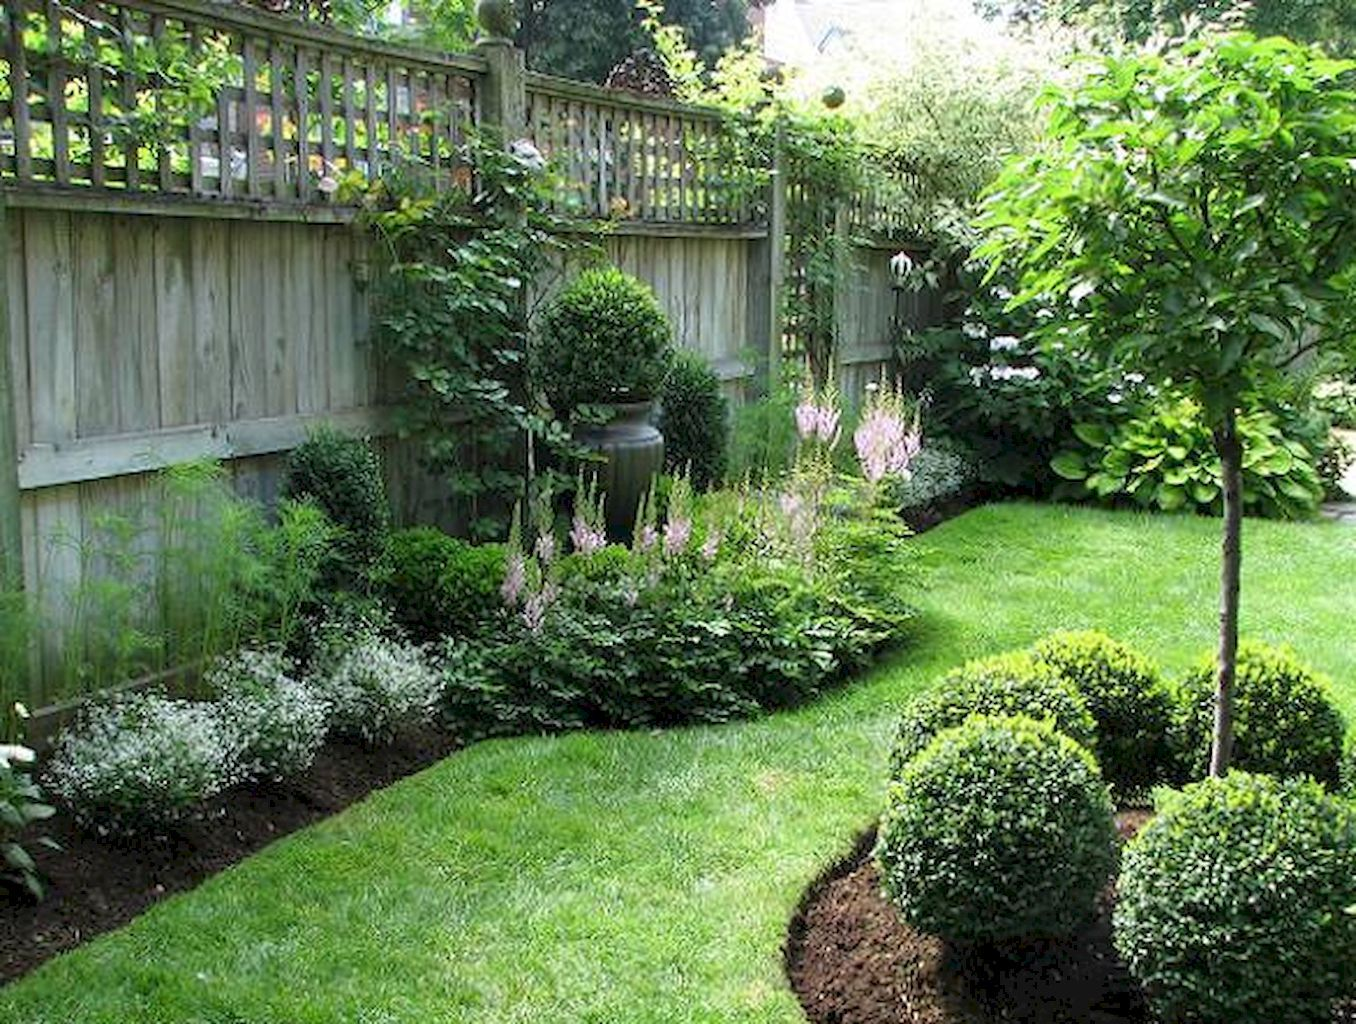 Pin by Cyn Duhan on landscaping | Pinterest | Backyard privacy ... Backyard Privacy Landscaping Ideas on backyard privacy screens ideas, backyard landscaping path ideas, small garden design ideas, southwest backyard landscaping ideas, privacy outdoor decorating ideas, natural privacy landscaping ideas, narrow backyard landscaping ideas, backyard privacy accessories, dog-friendly backyard landscaping ideas, tall privacy fencing ideas, florida tropical pool ideas, driveway privacy landscaping ideas, flat backyard landscaping ideas, backyard simple landscaping ideas, courtyard privacy landscaping ideas, unique backyard privacy ideas, backyard privacy trees, cheap backyard privacy ideas, hot tub privacy deck ideas, backyard deck landscaping ideas,